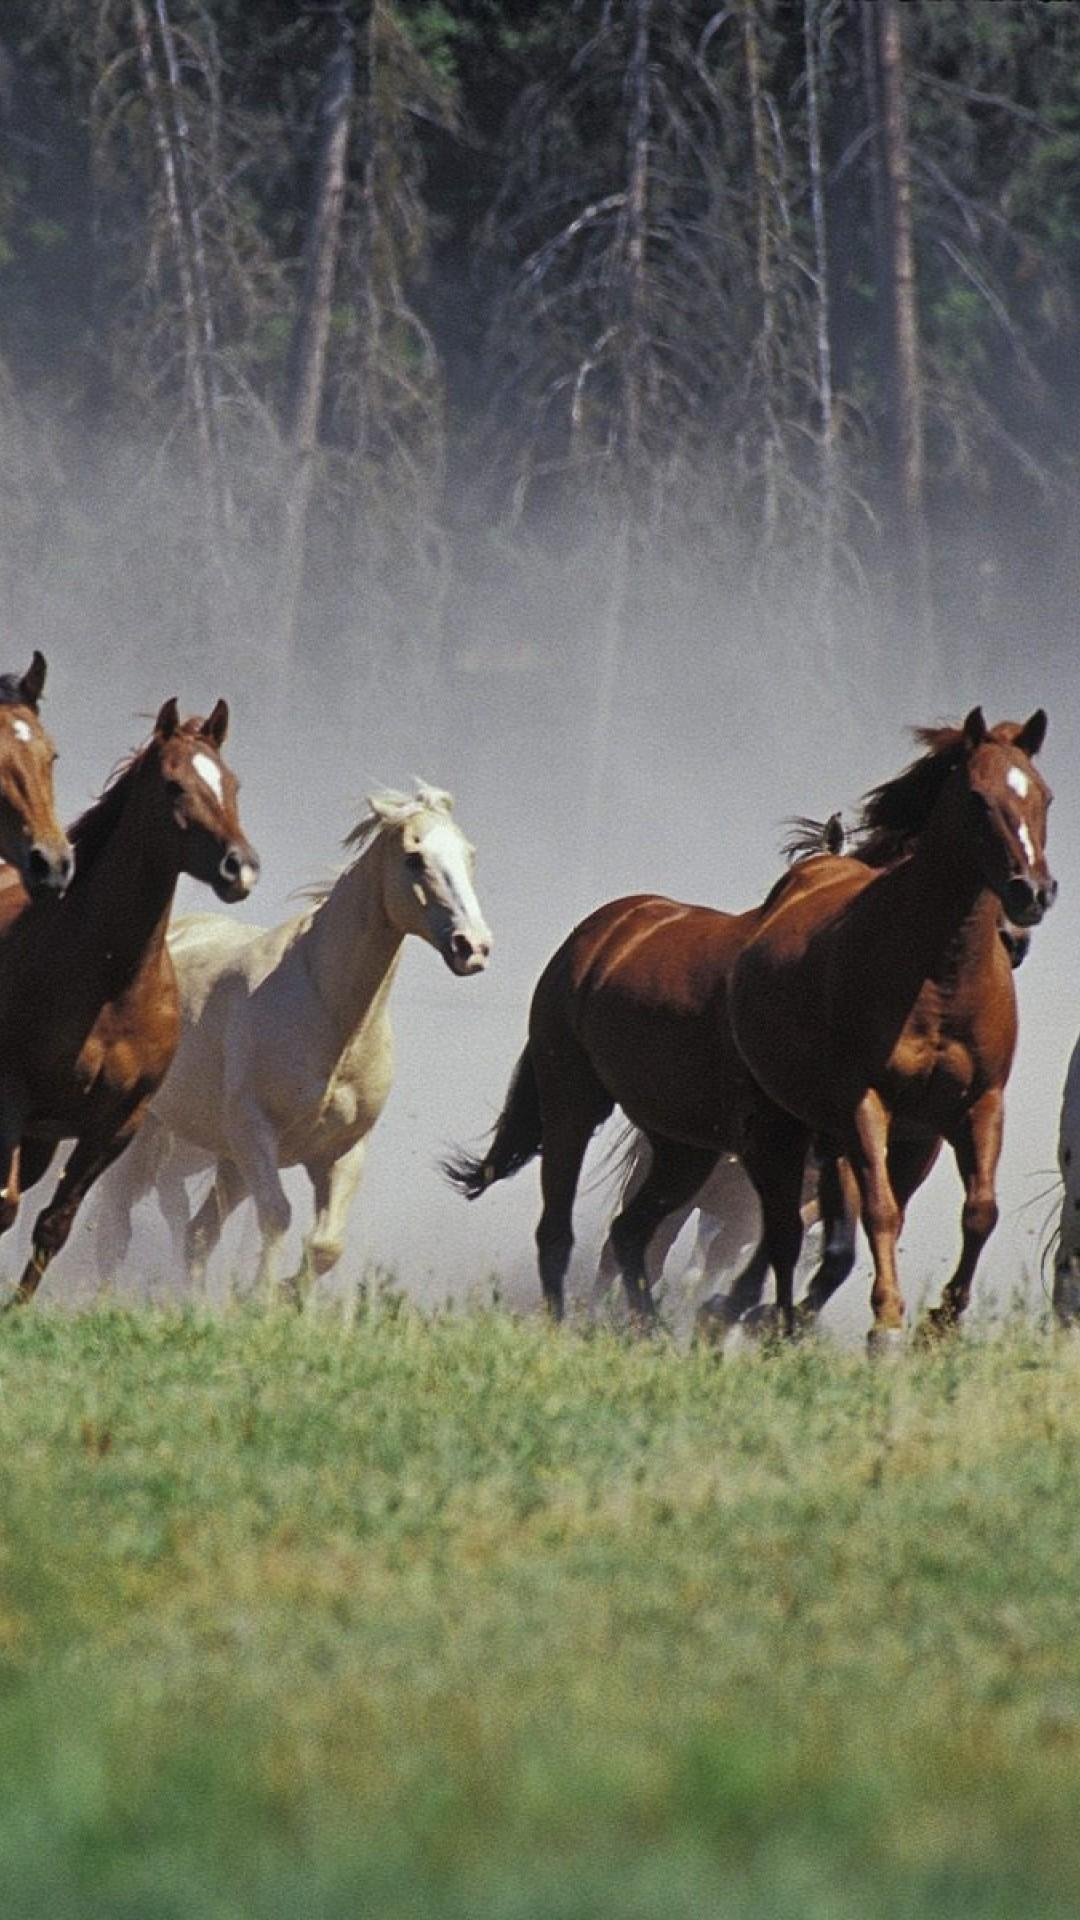 7 Horse Running Mobile Wallpapers Wallpaper Cave